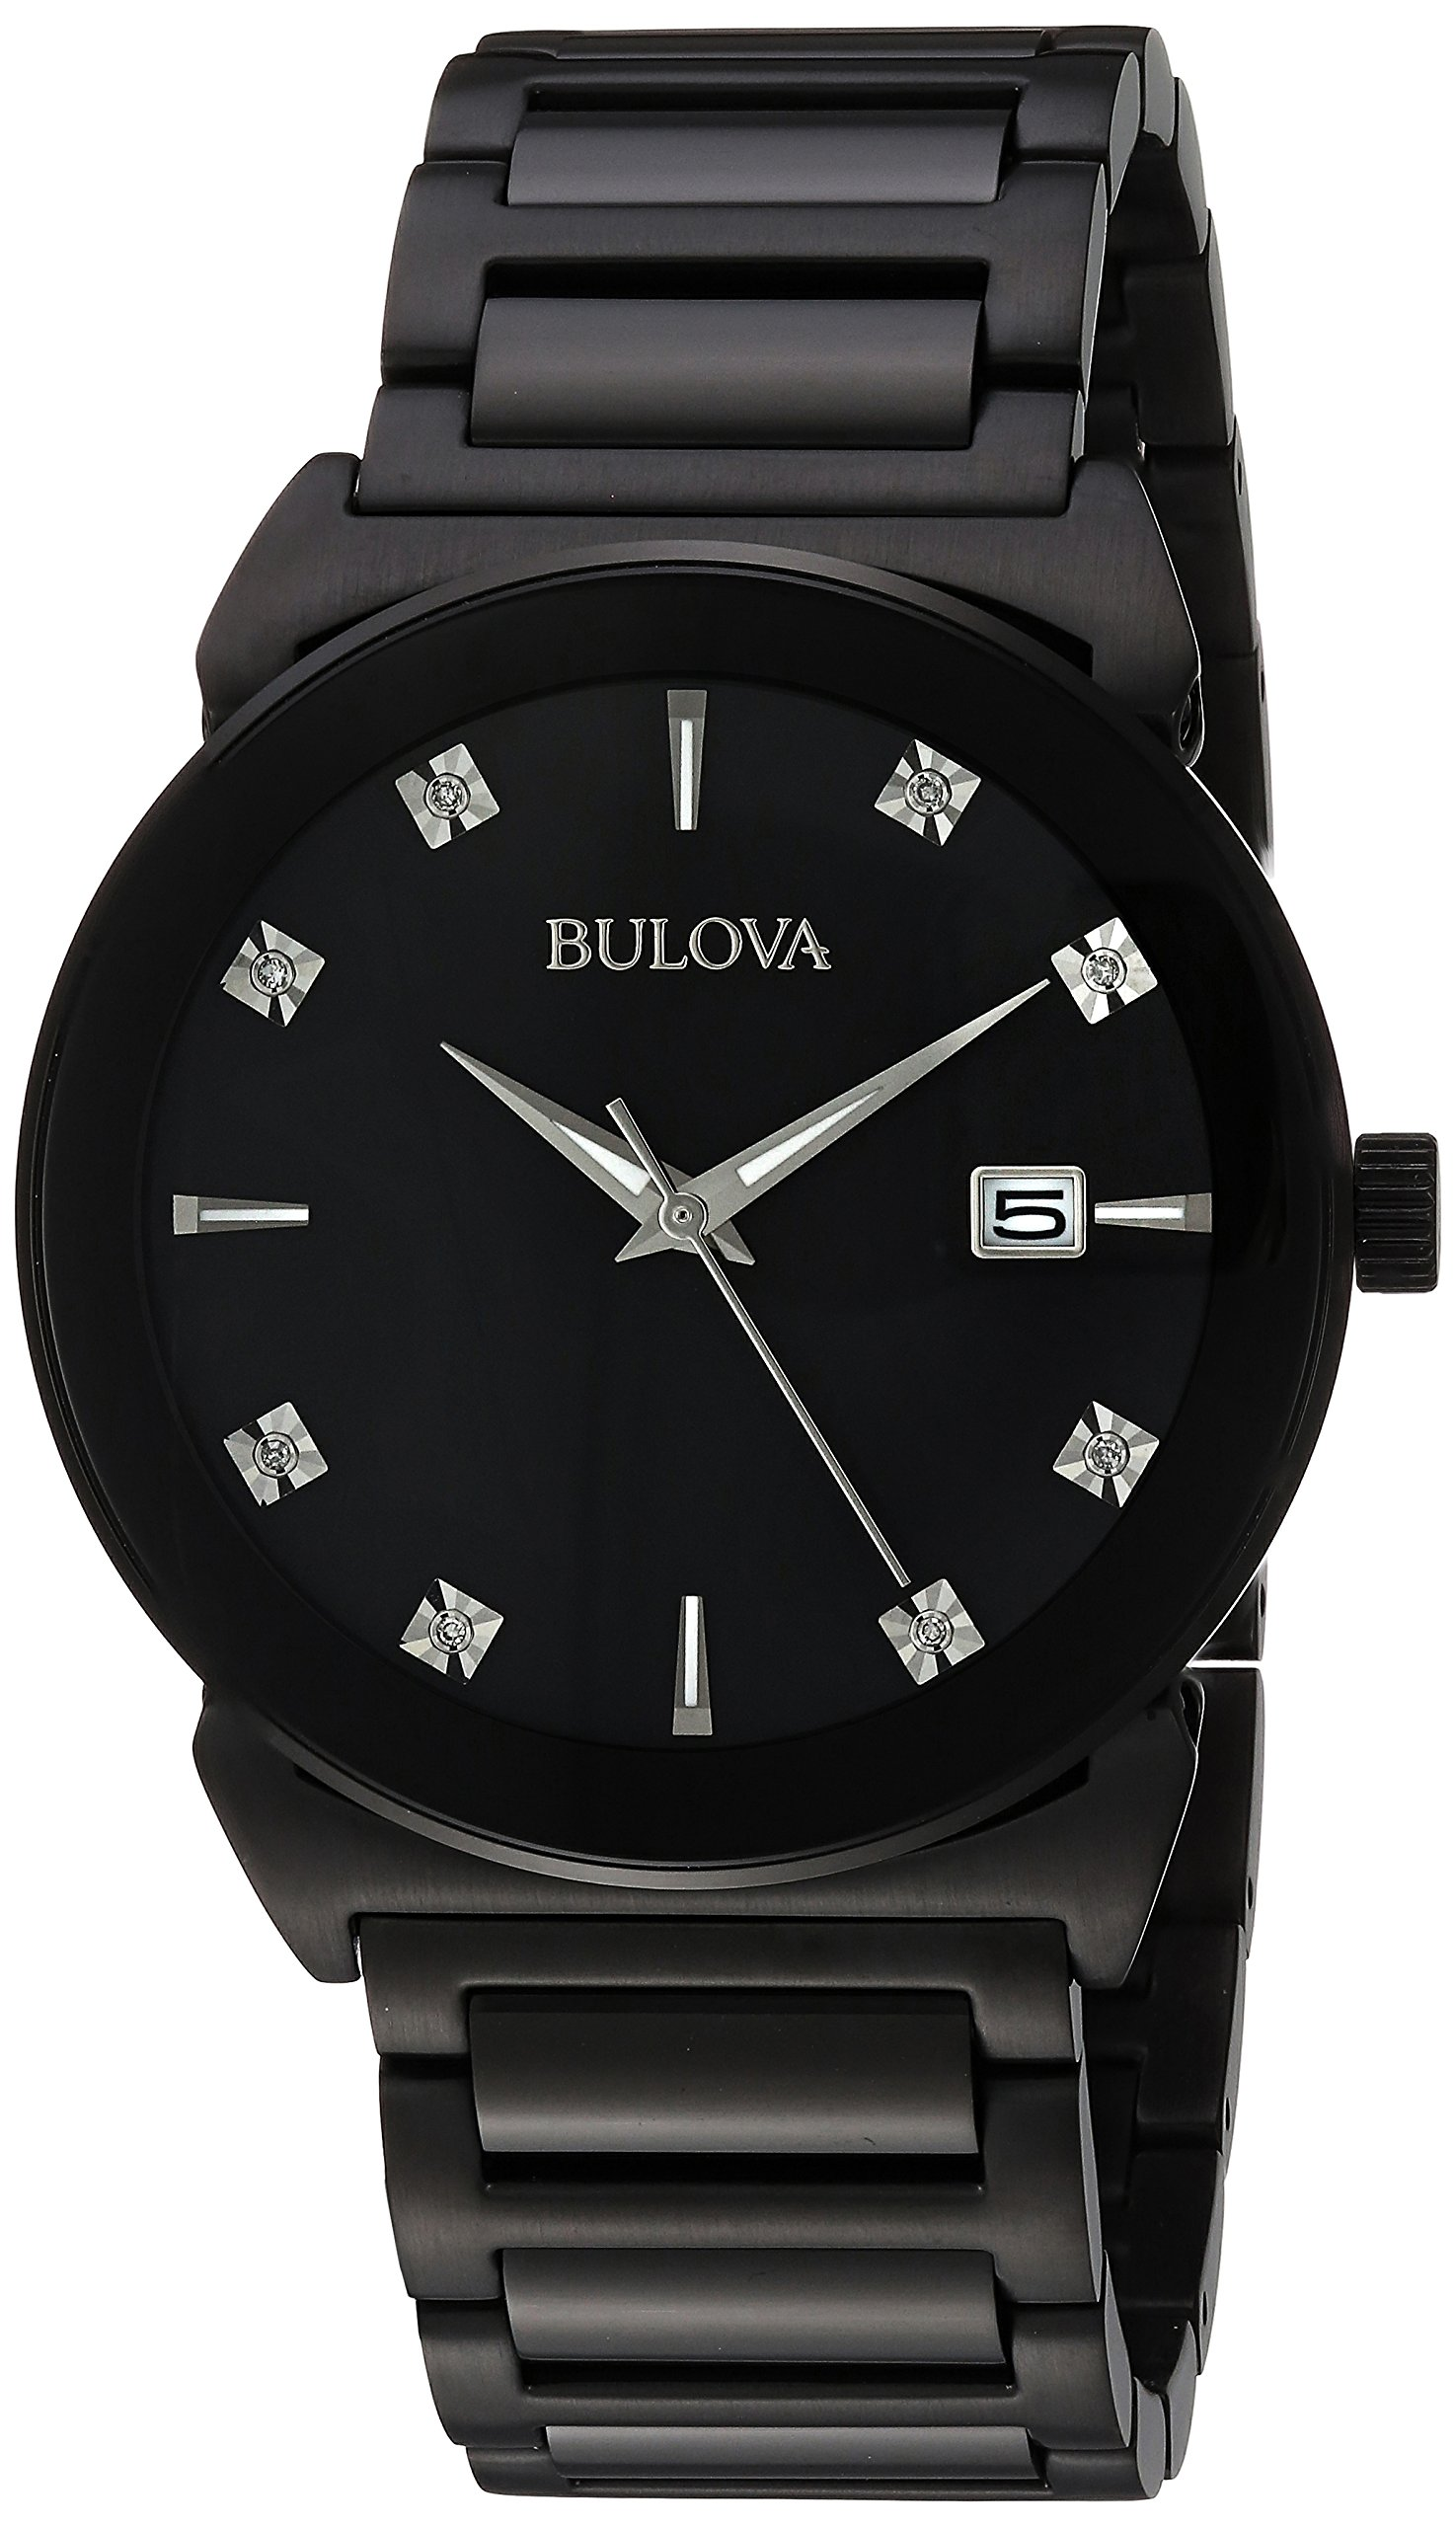 Bulova Men's 98D121 Analog Display Japanese Quartz Black Watch